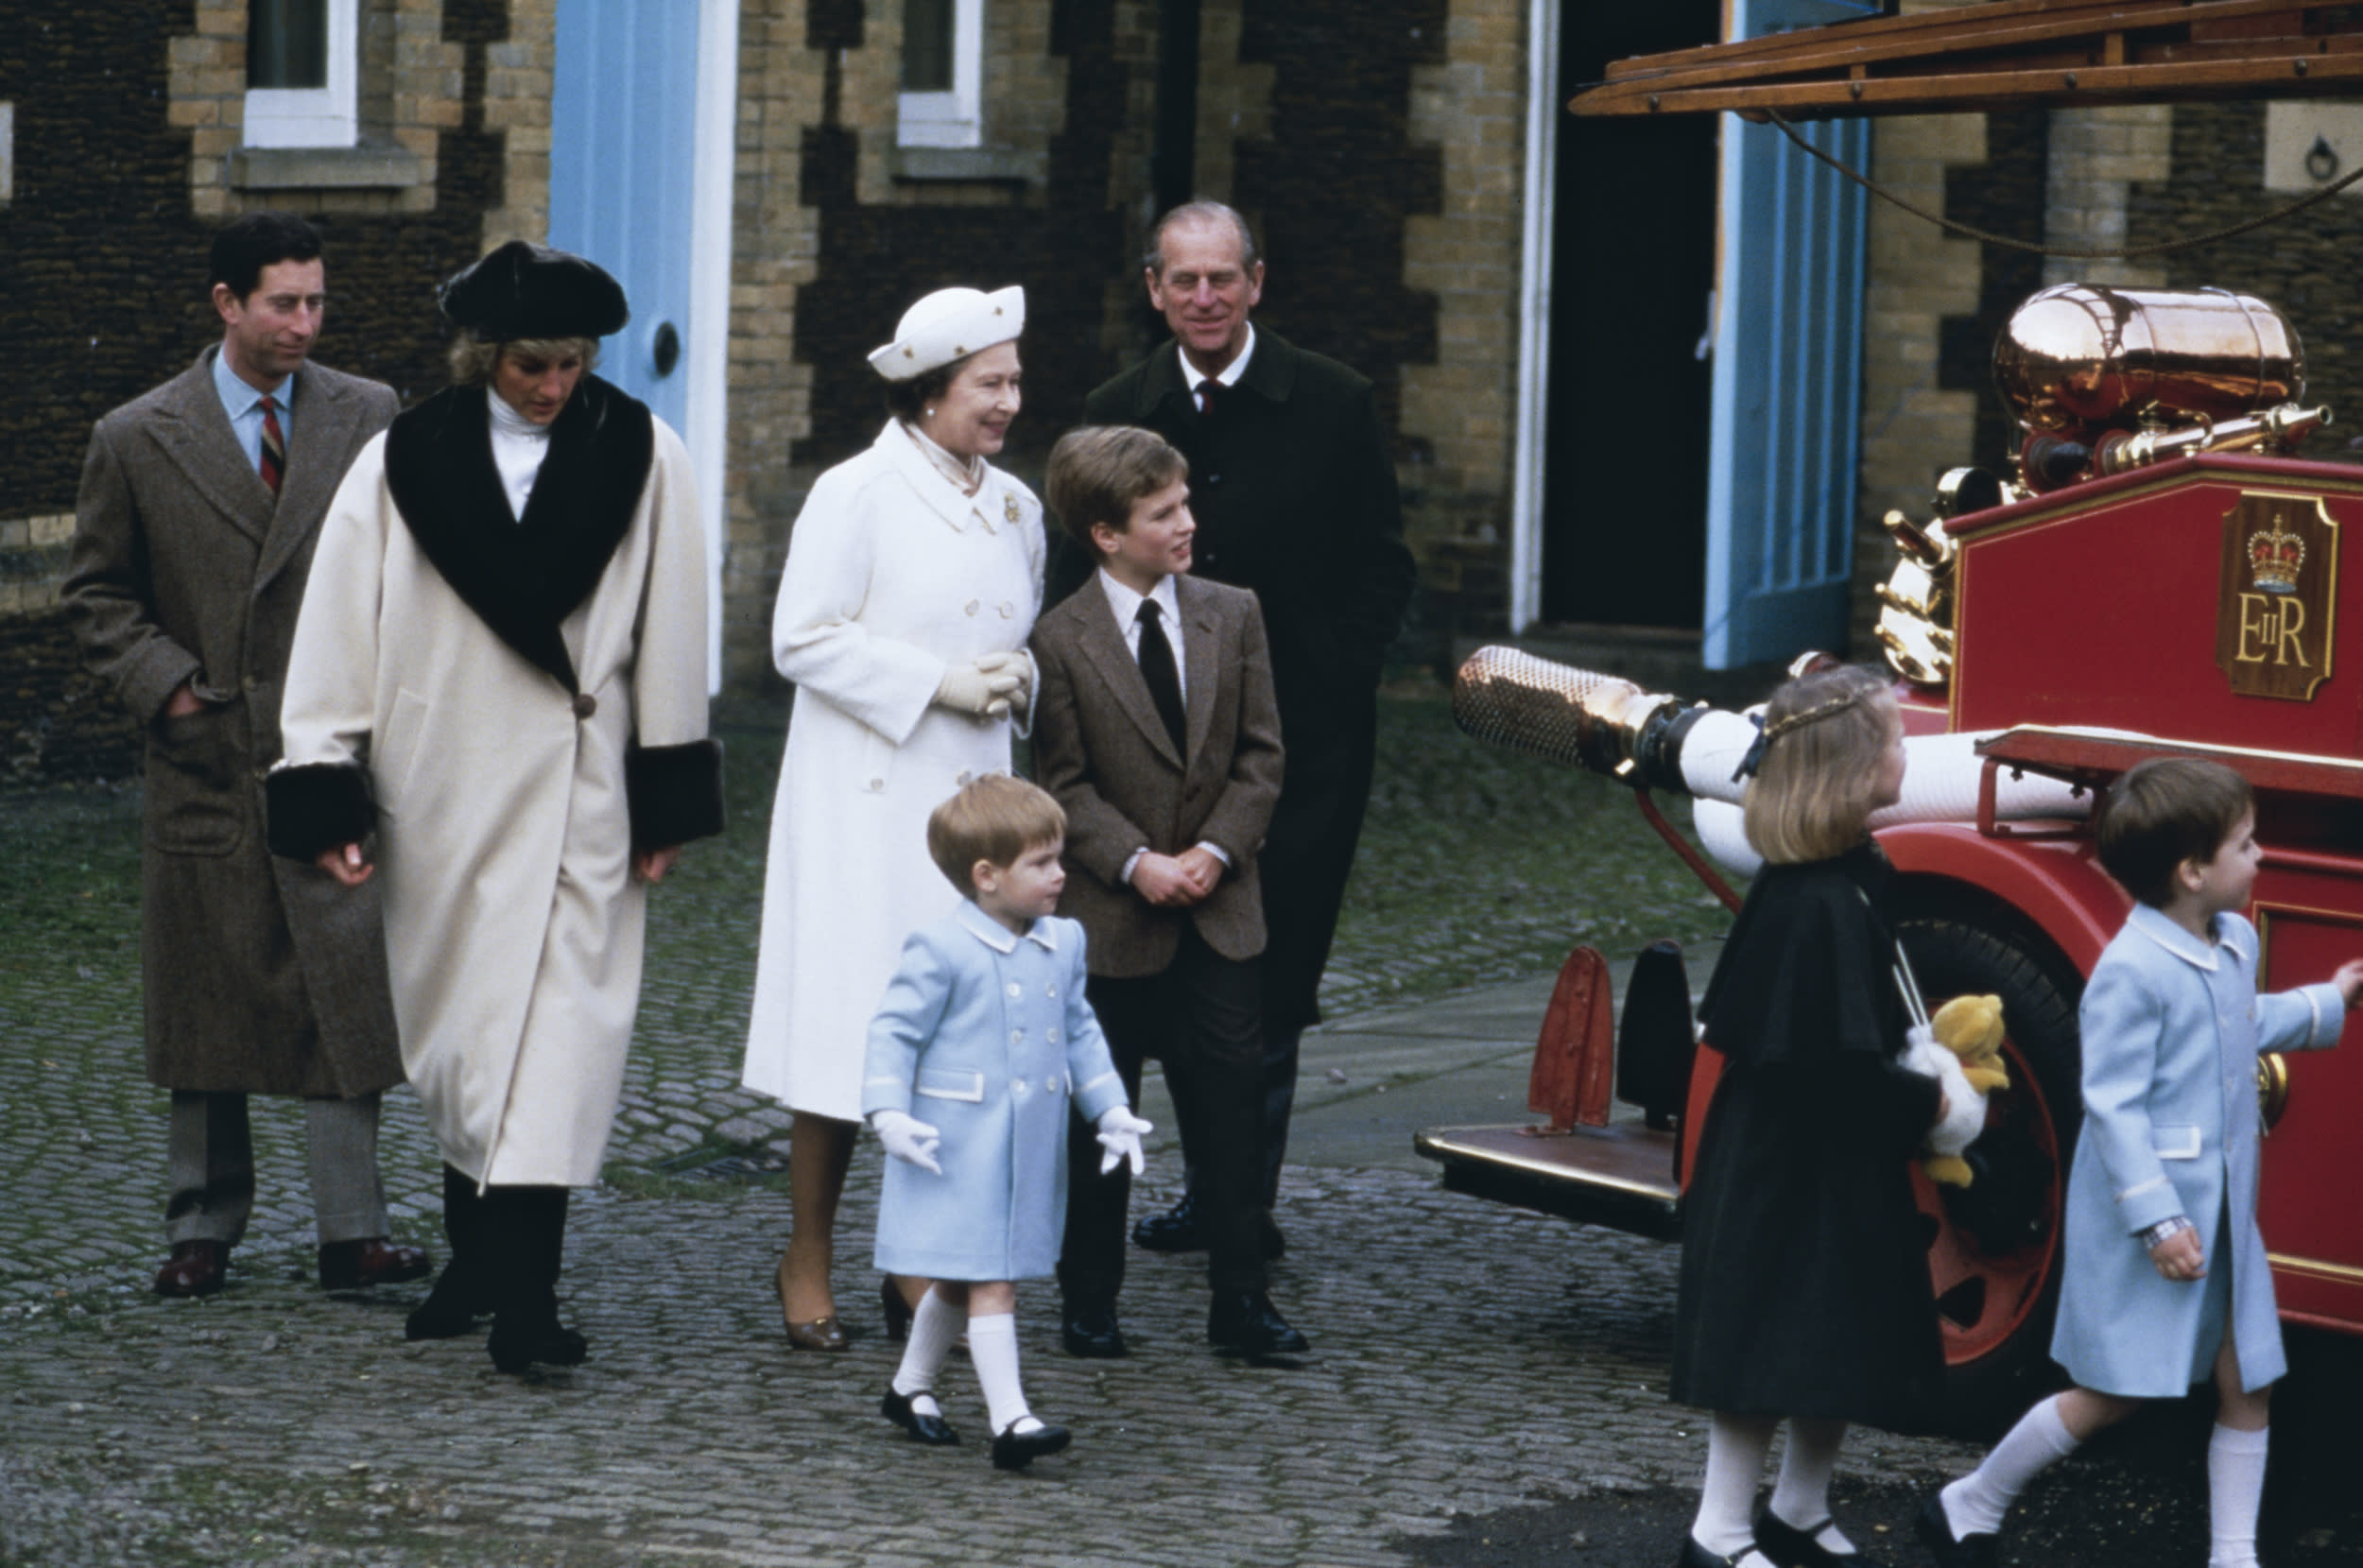 A royal family visit to a museum in Sandringham, where the children climb on a fire engine, January 1988. From left to right Prince Charles, Princess Diana, Queen Elizabeth, Peter Philips, Prince Philip, Duke of Edinburgh, Prince Harry, wearing a blue coat, Zara Phillips and Prince William.  (Photo by Jayne Fincher/Princess Diana Archive/Getty Images)